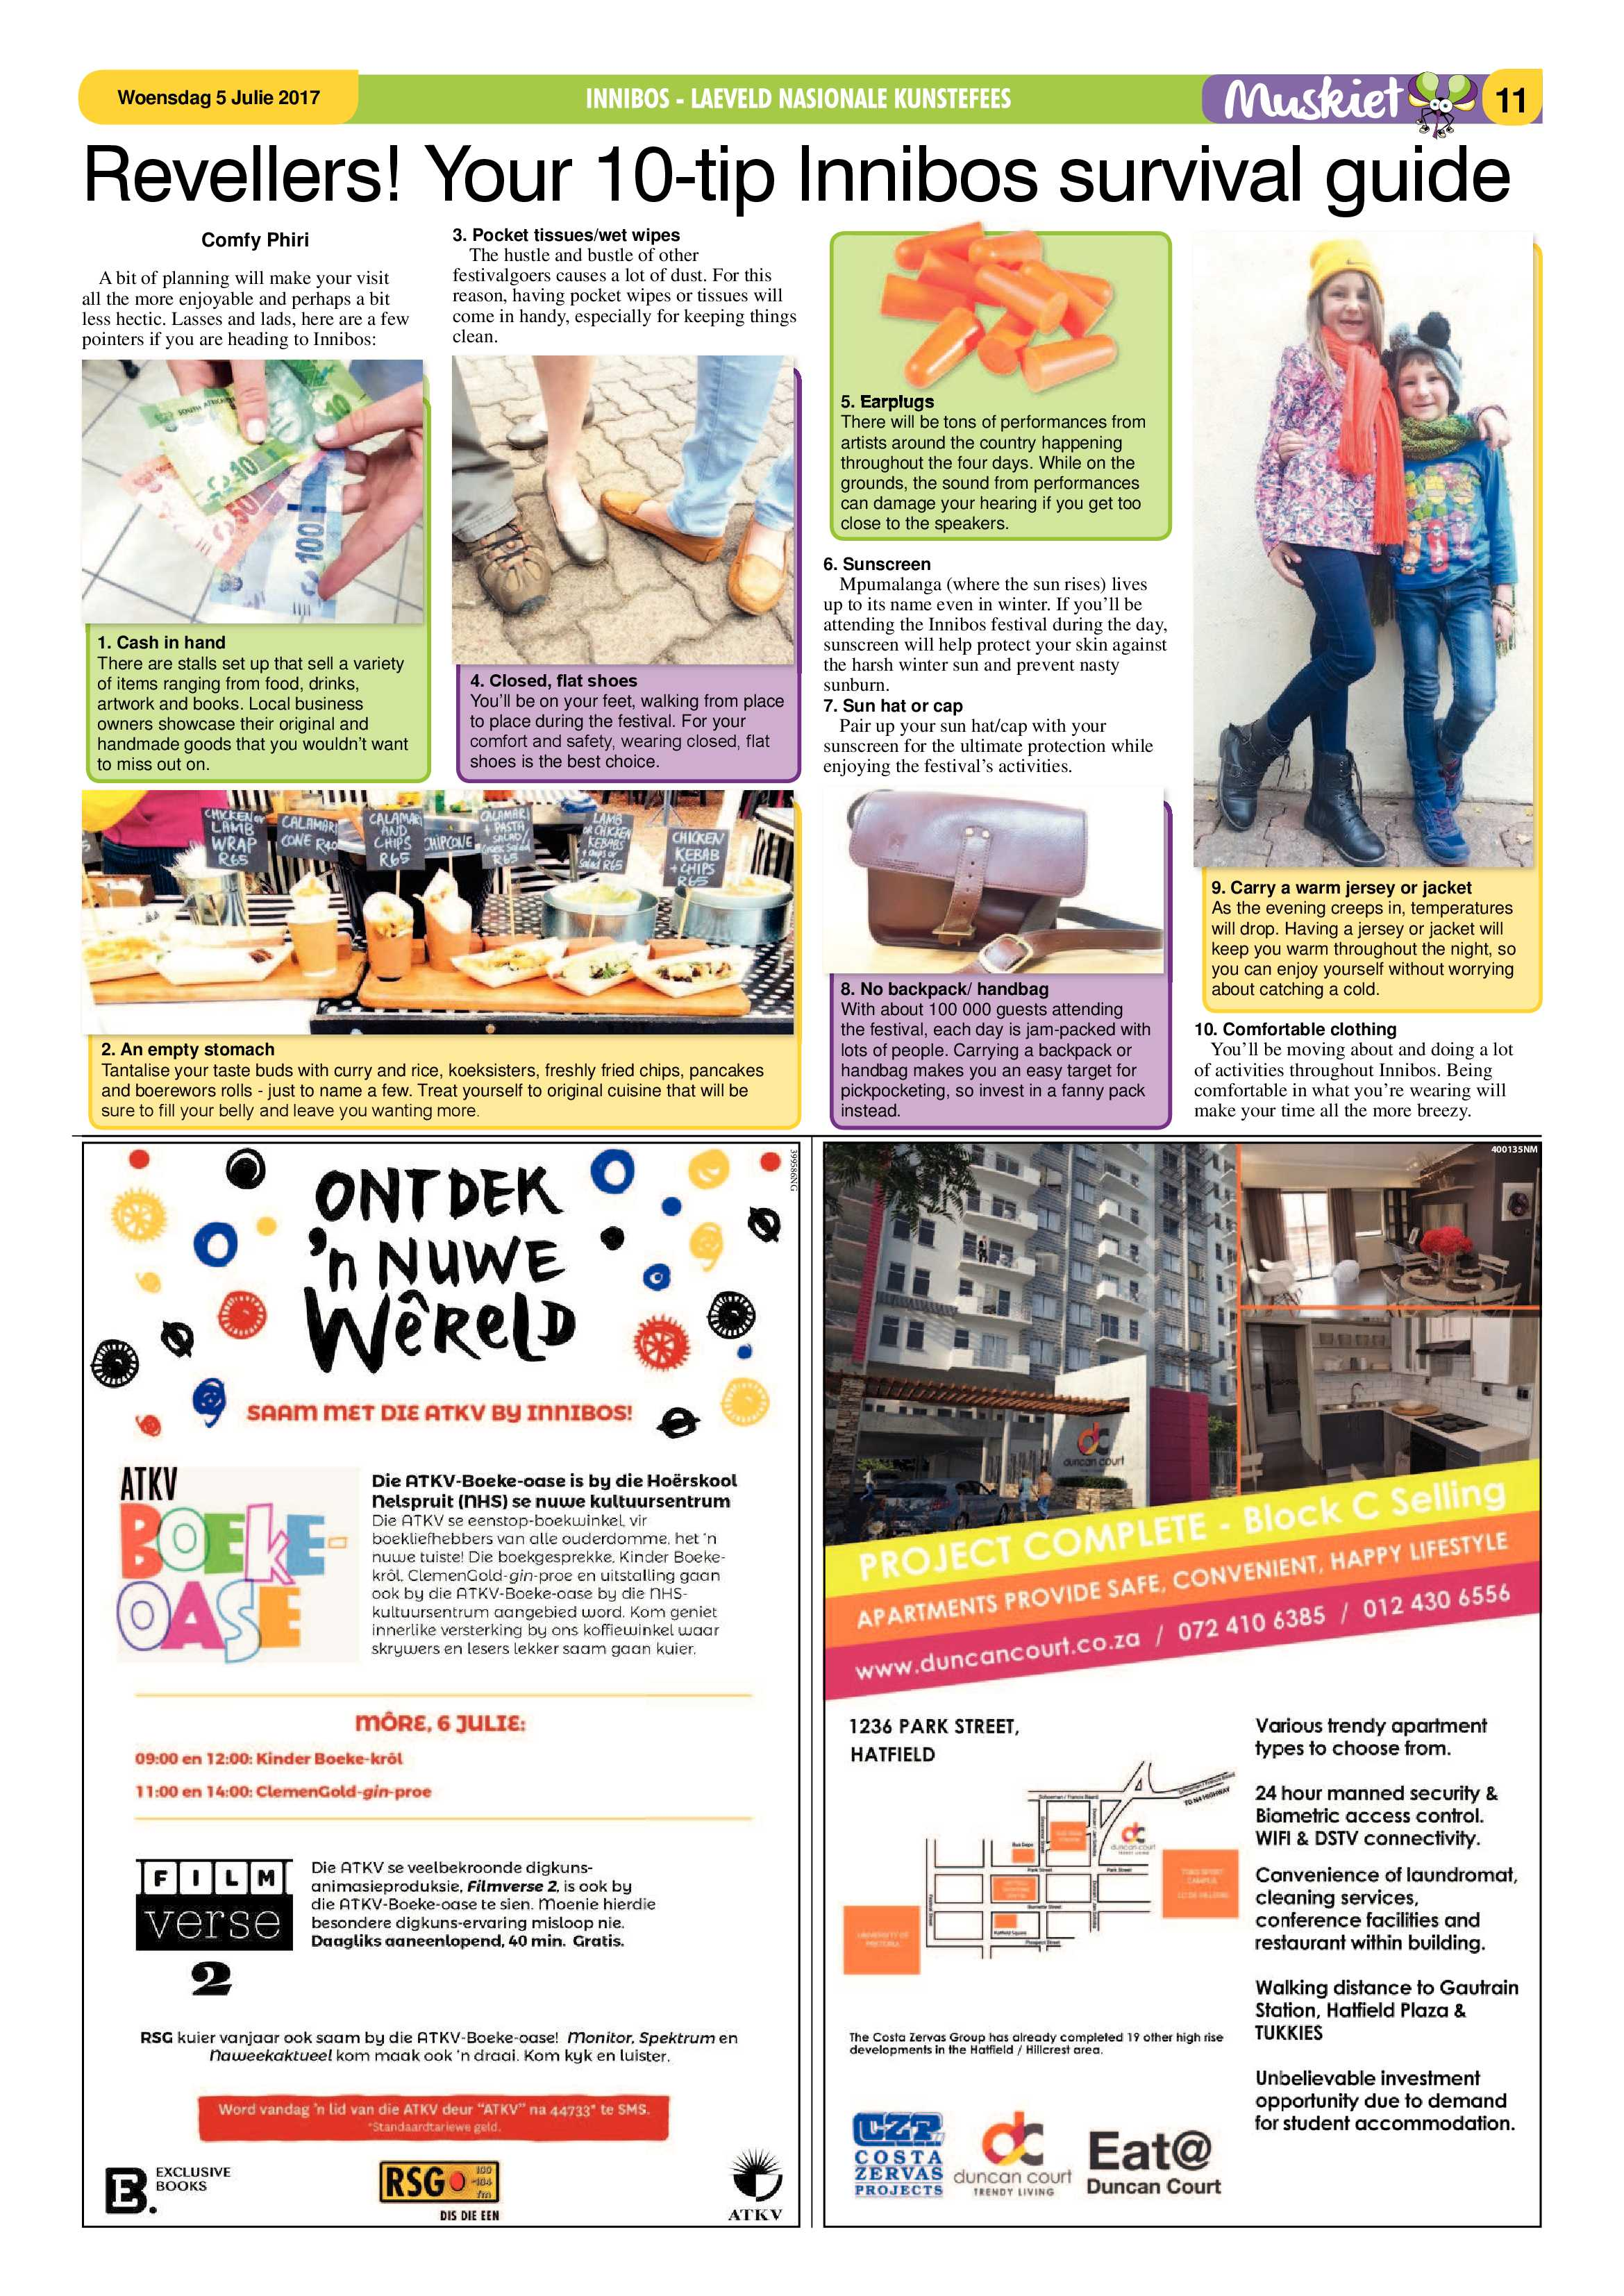 muskiet-5-july-2017-epapers-page-11